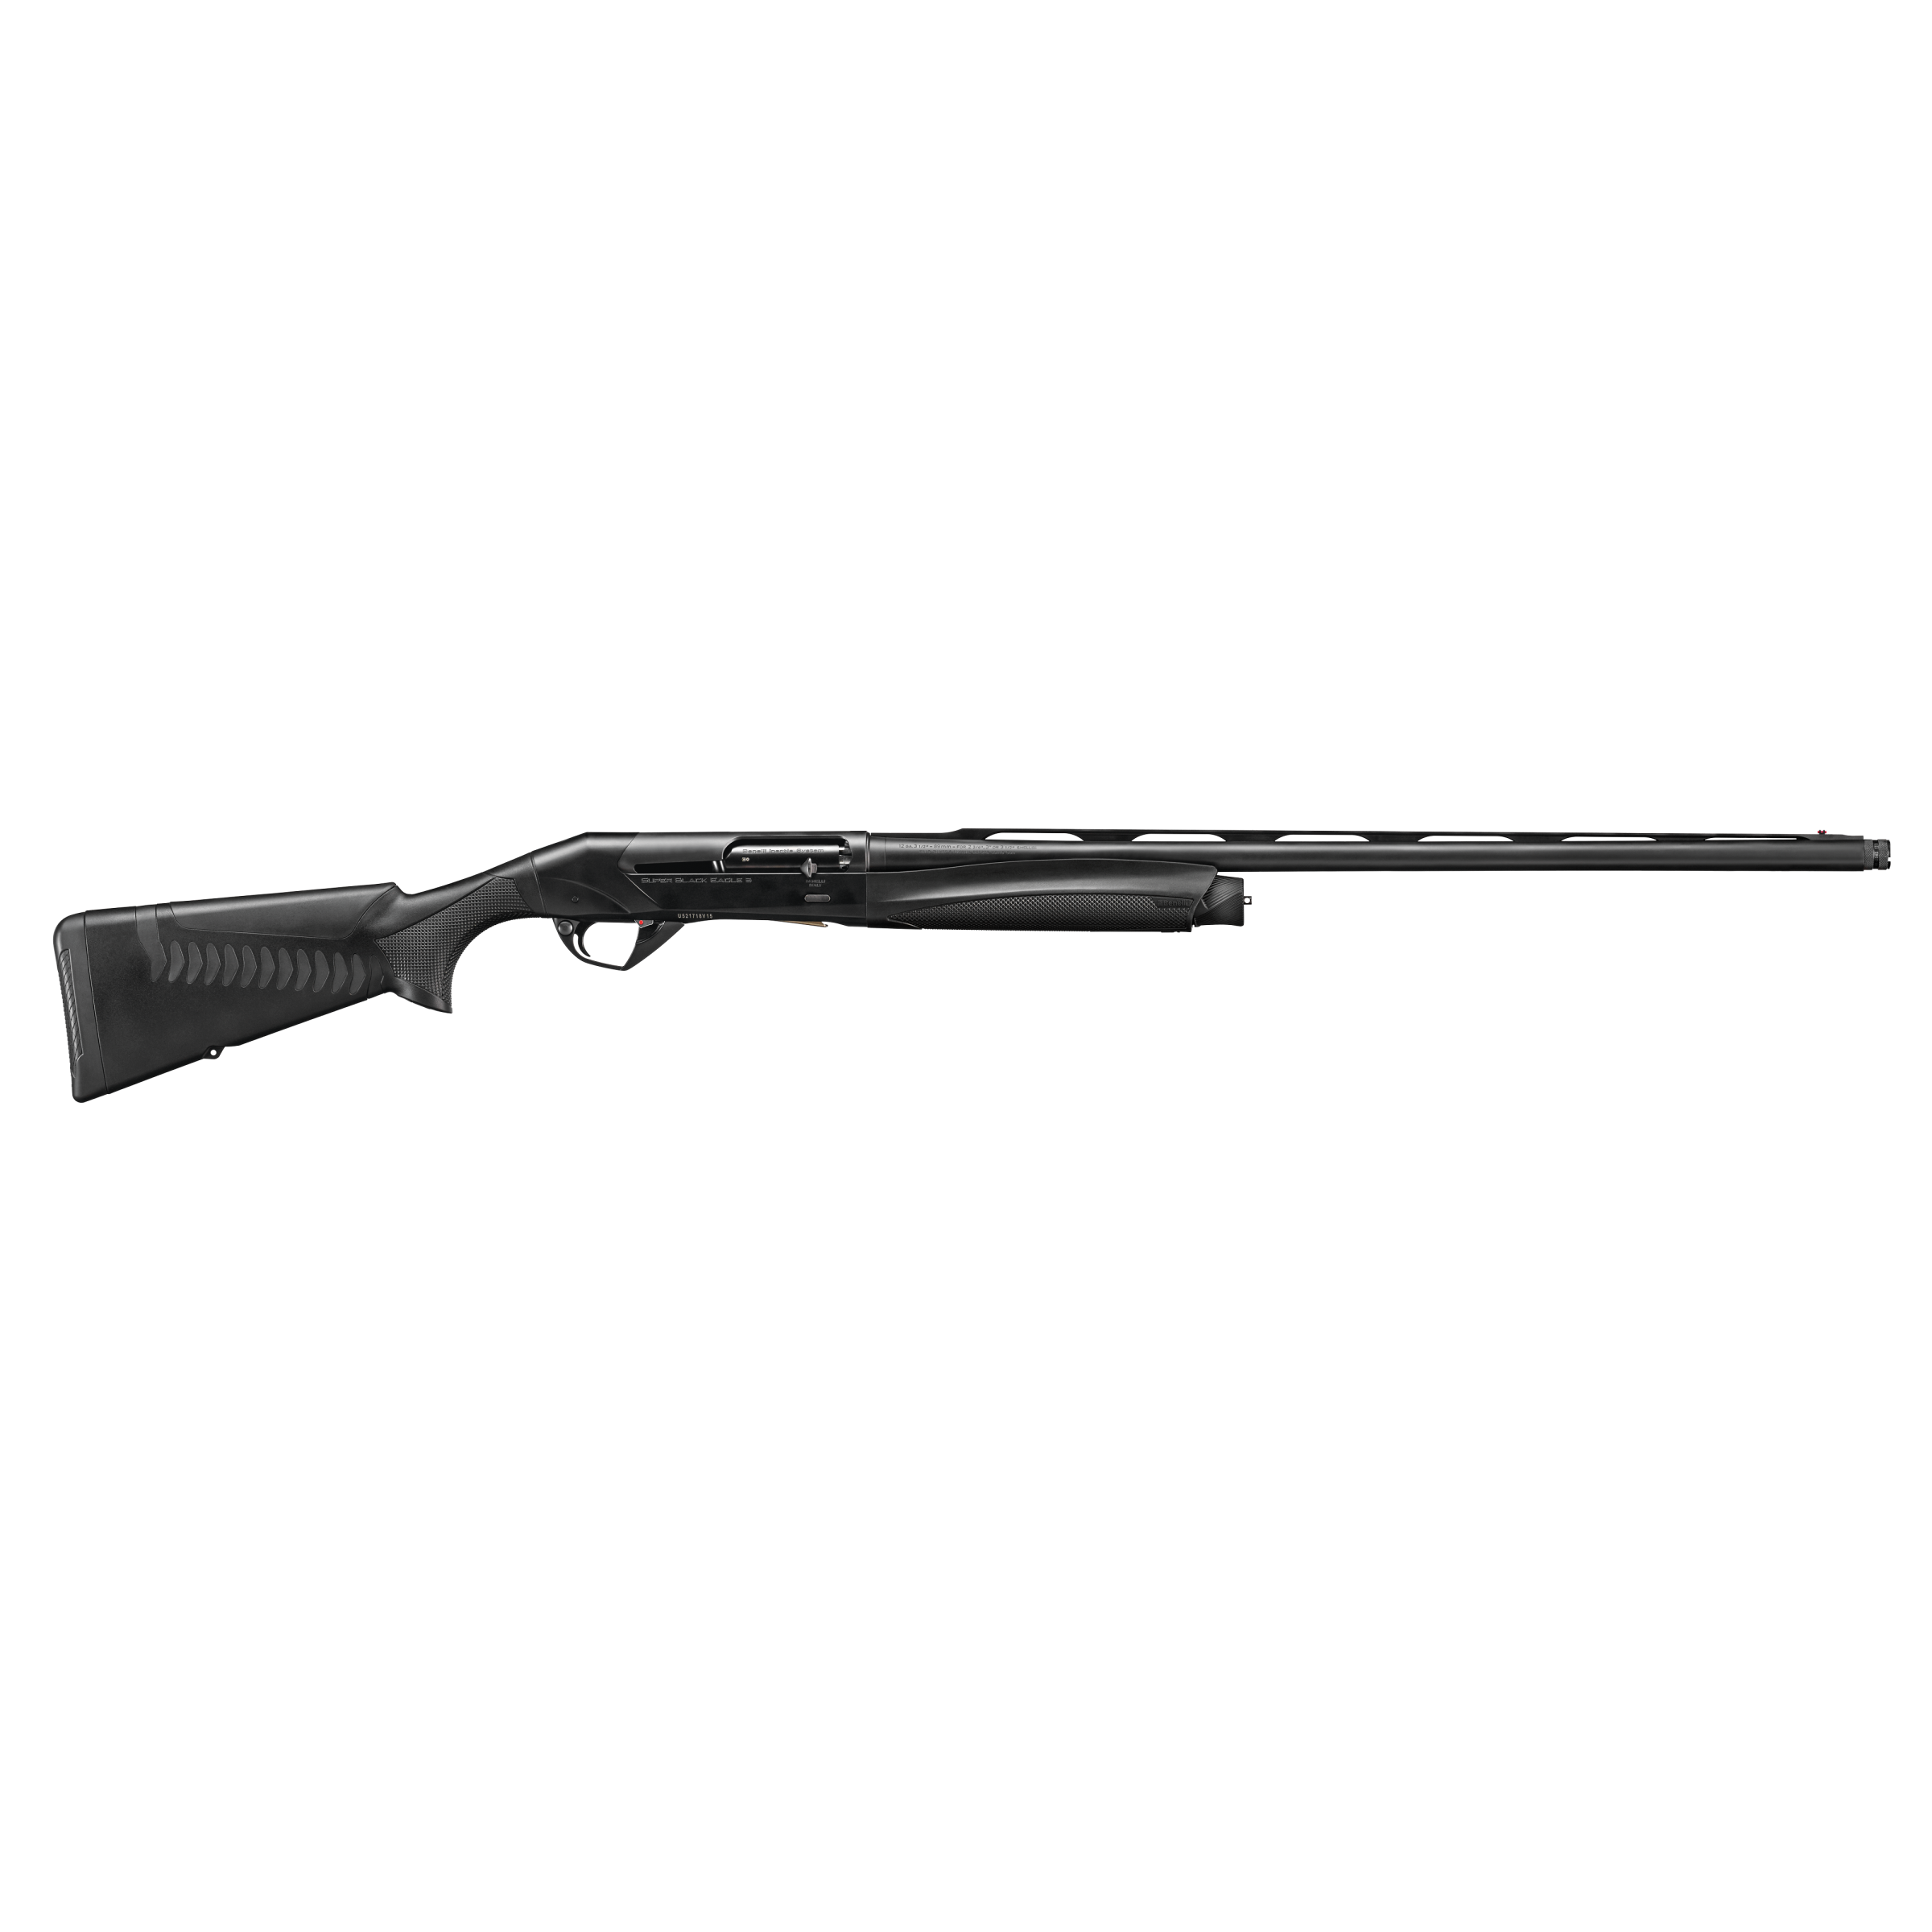 Benelli Super Black Eagle 3 10316 12GA 28IN Black Semi Auto